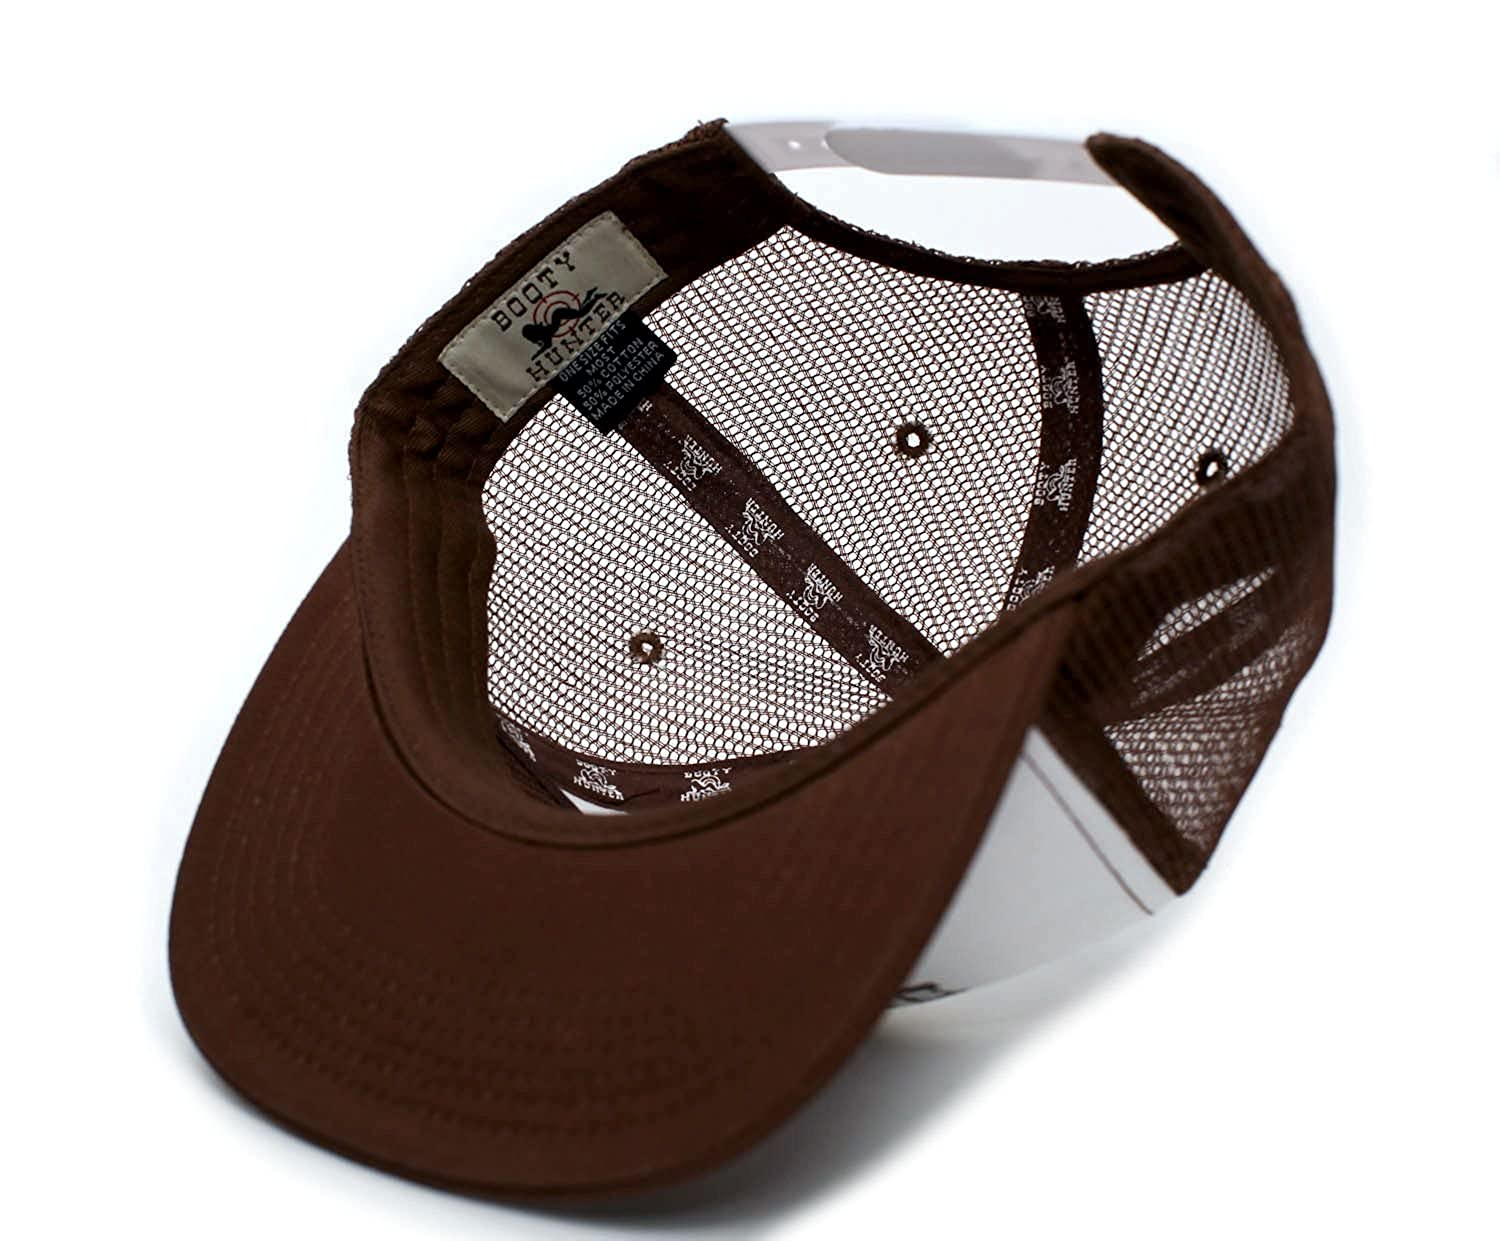 d0e12b23c3133 Booty Hunter Flat Bill Unisex-Adult One-Size Trucker Hat Cap Brown White at  Amazon Men s Clothing store